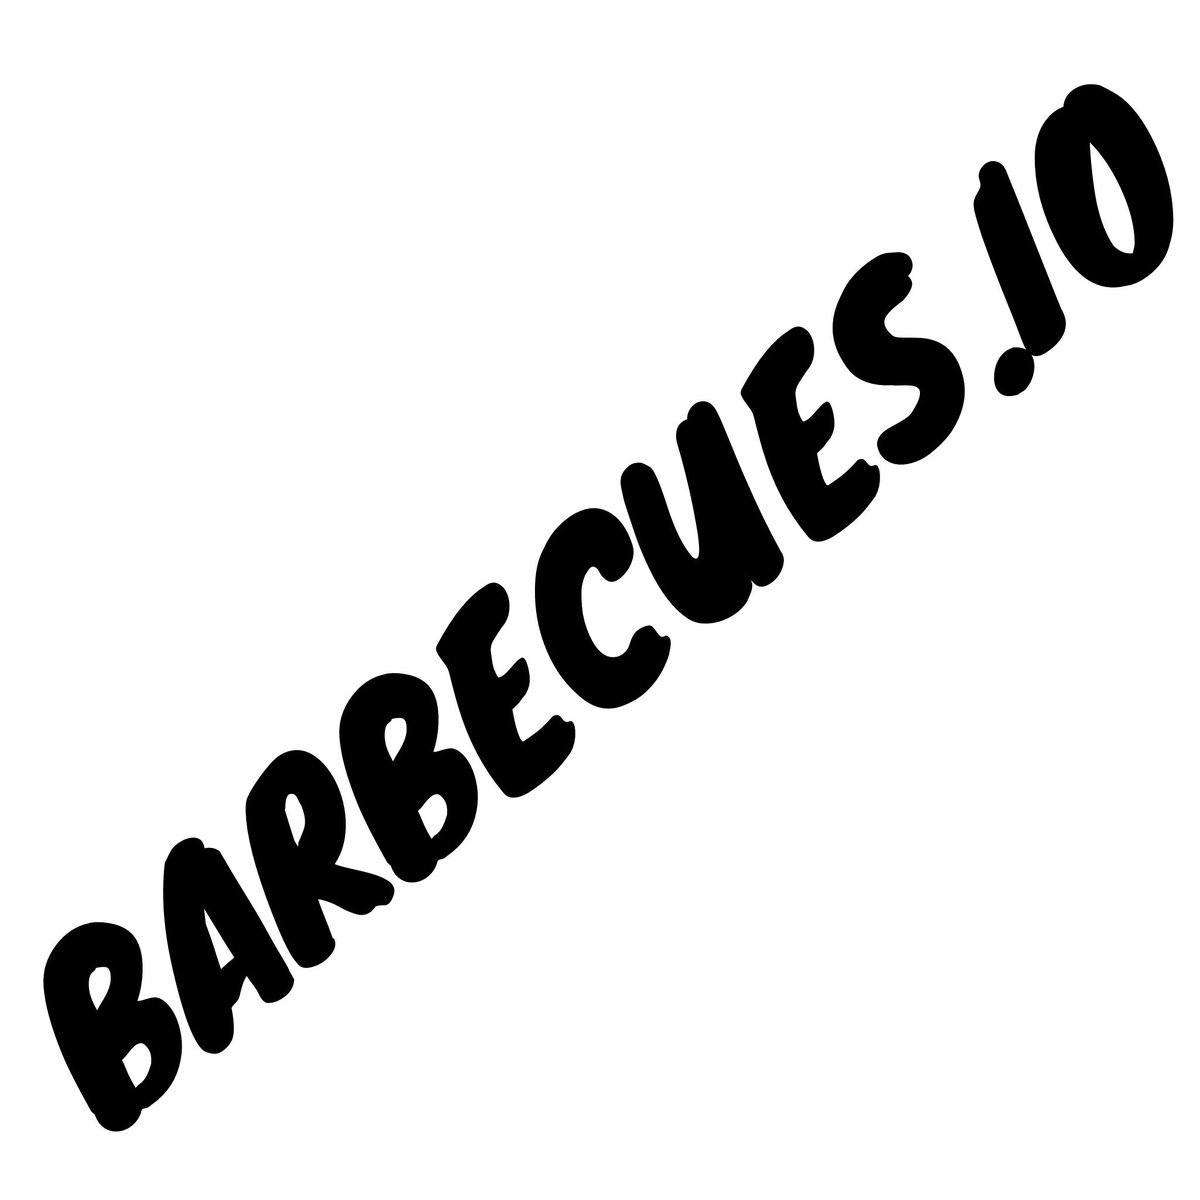 https://t.co/9ZHukyUcti AWESOME Mobile Application---Live Domain Name Auction!!! #brisket #texas #teamtraeger #carnivore #summer #traegerbbq #instagood #beef  #girlscangrill #smokedmeat #smoke #txbbq #wannabepitmaster #meatgroup #smokeverything #chicken #fish #Shrimps https://t.co/dPDAfXyroy